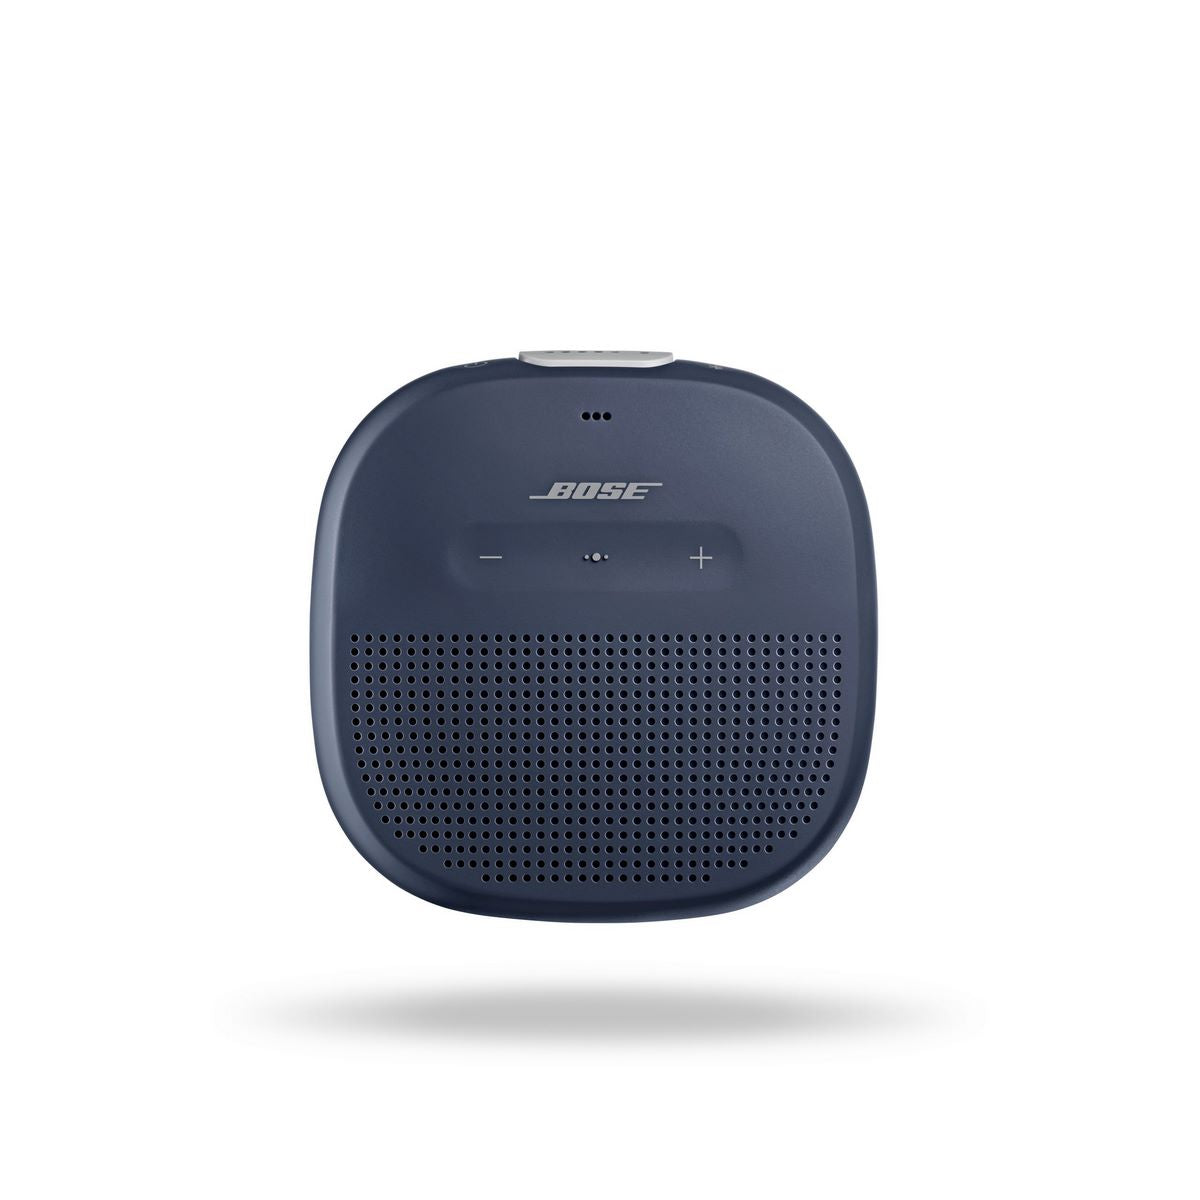 Eleksis Bose SoundLink Micro Bluetooth Speaker Philippines